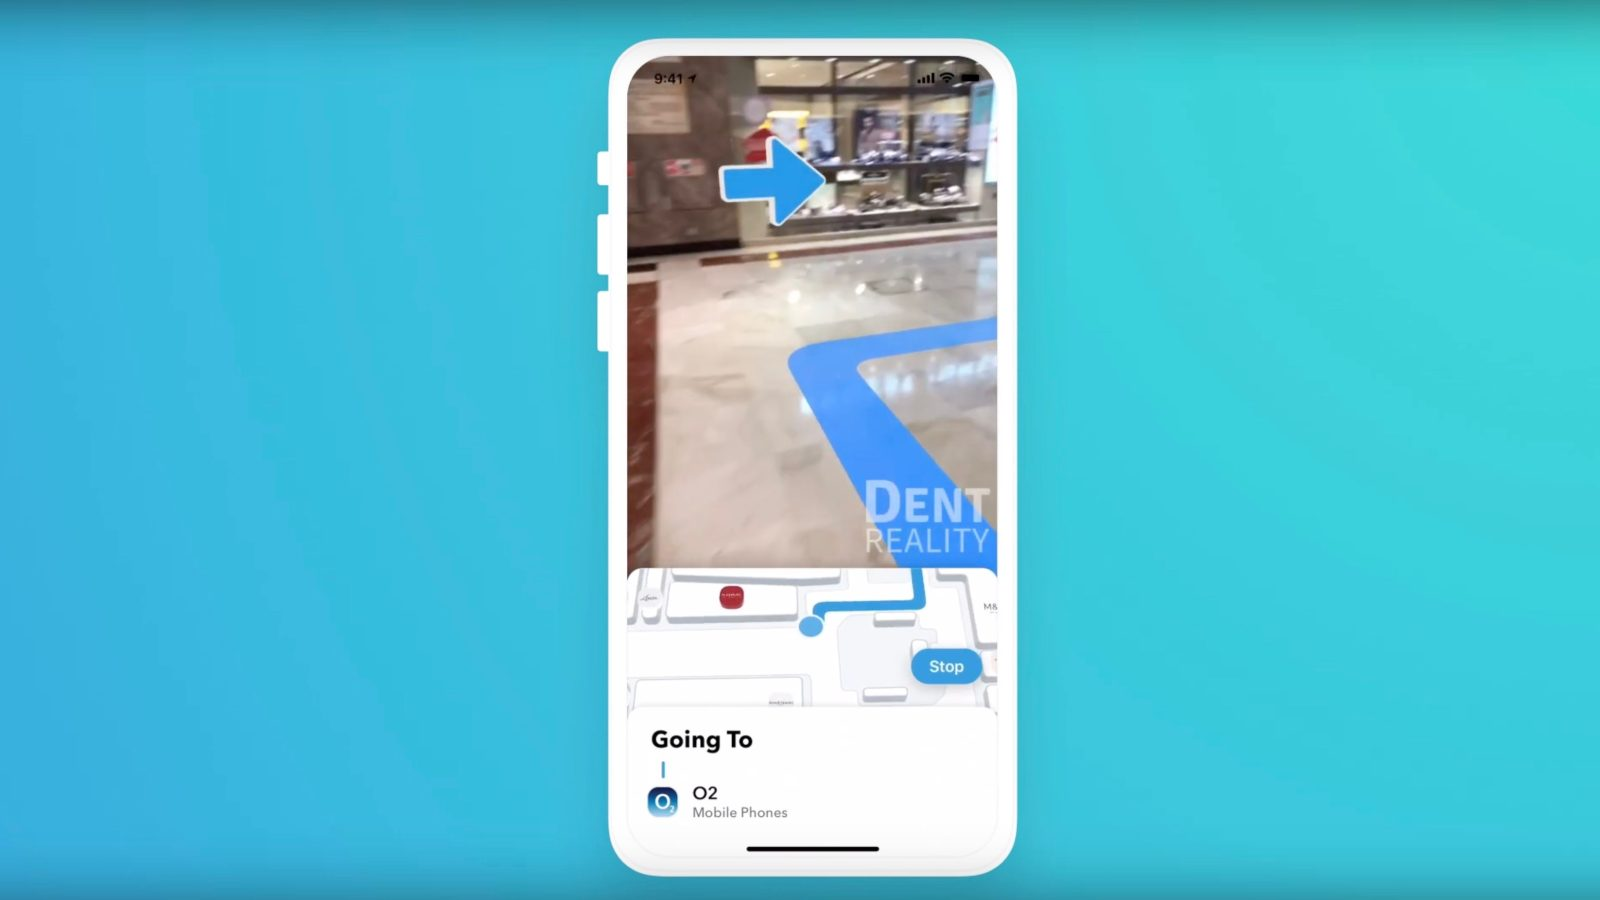 Slick new AR indoor navigation app coming to iOS soon - 9to5Mac